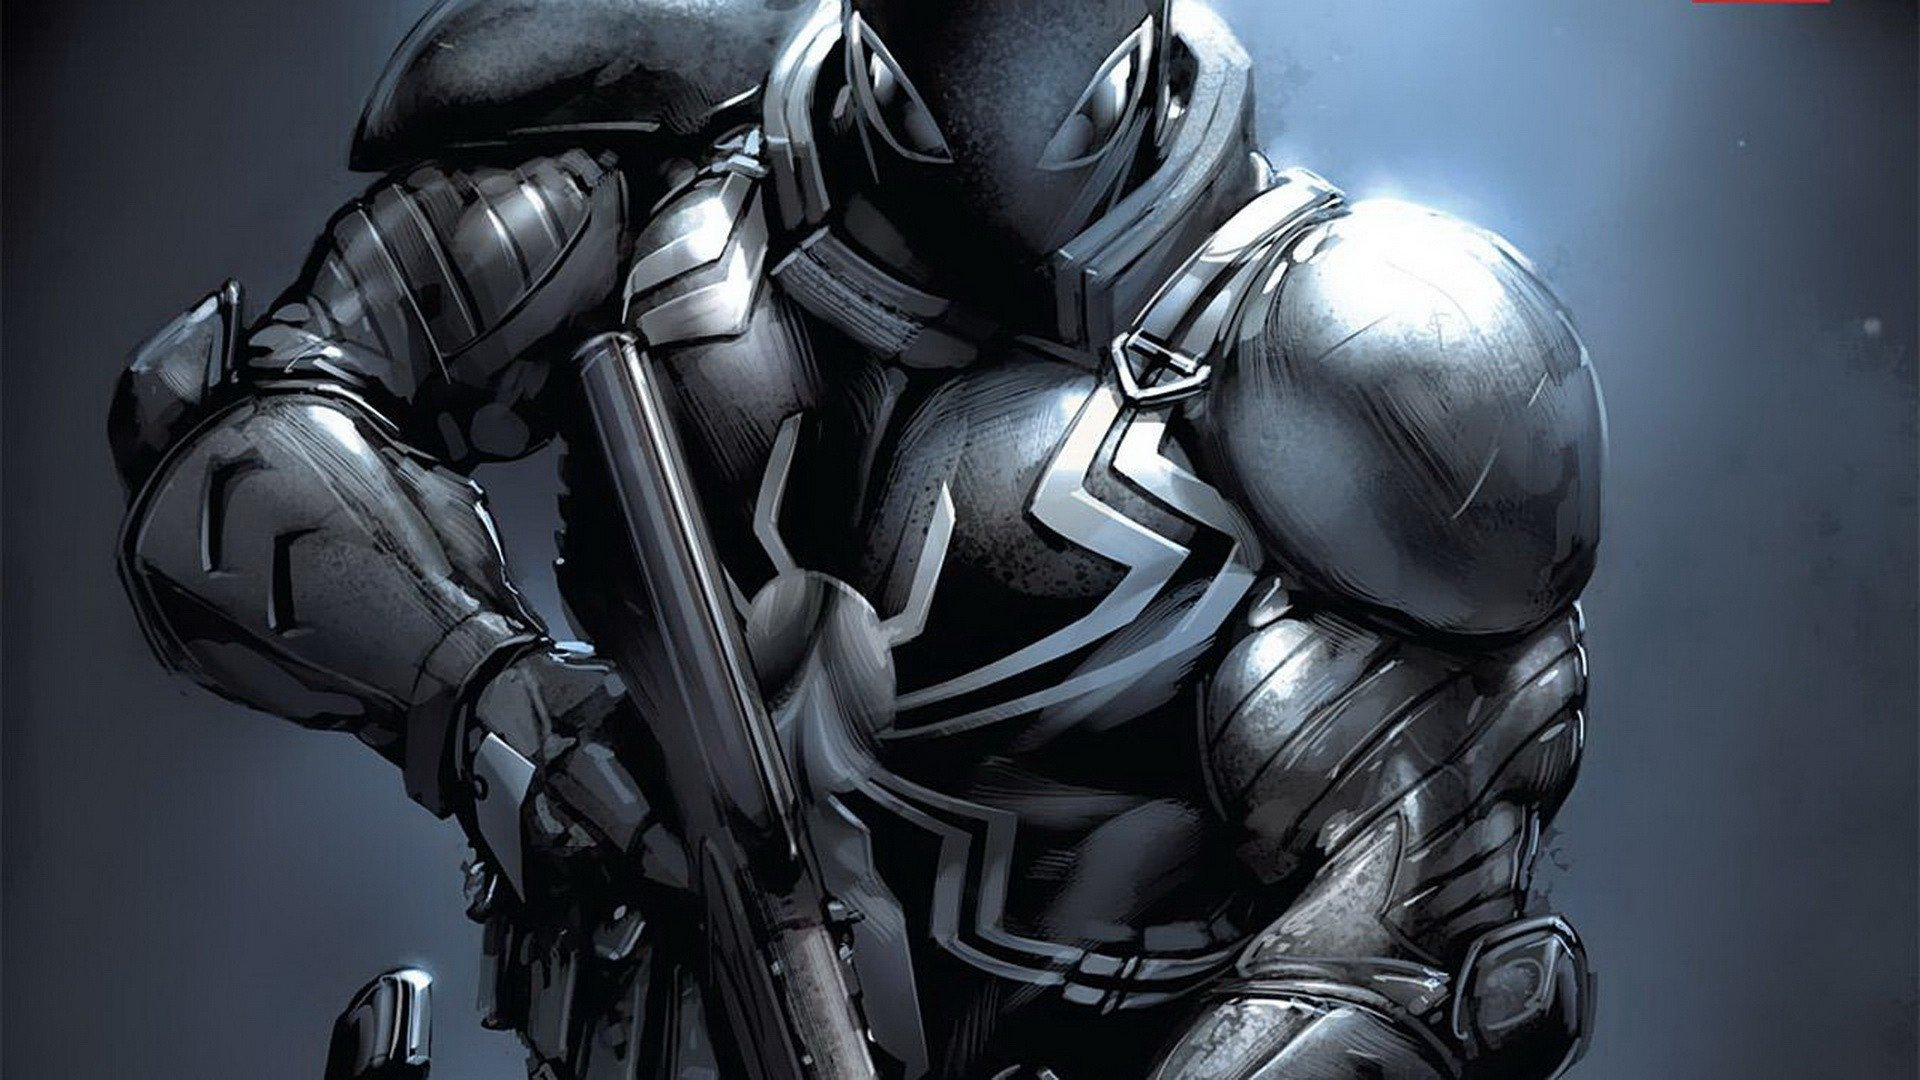 22 Agent Venom Hd Wallpapers Background Images Wallpaper Abyss